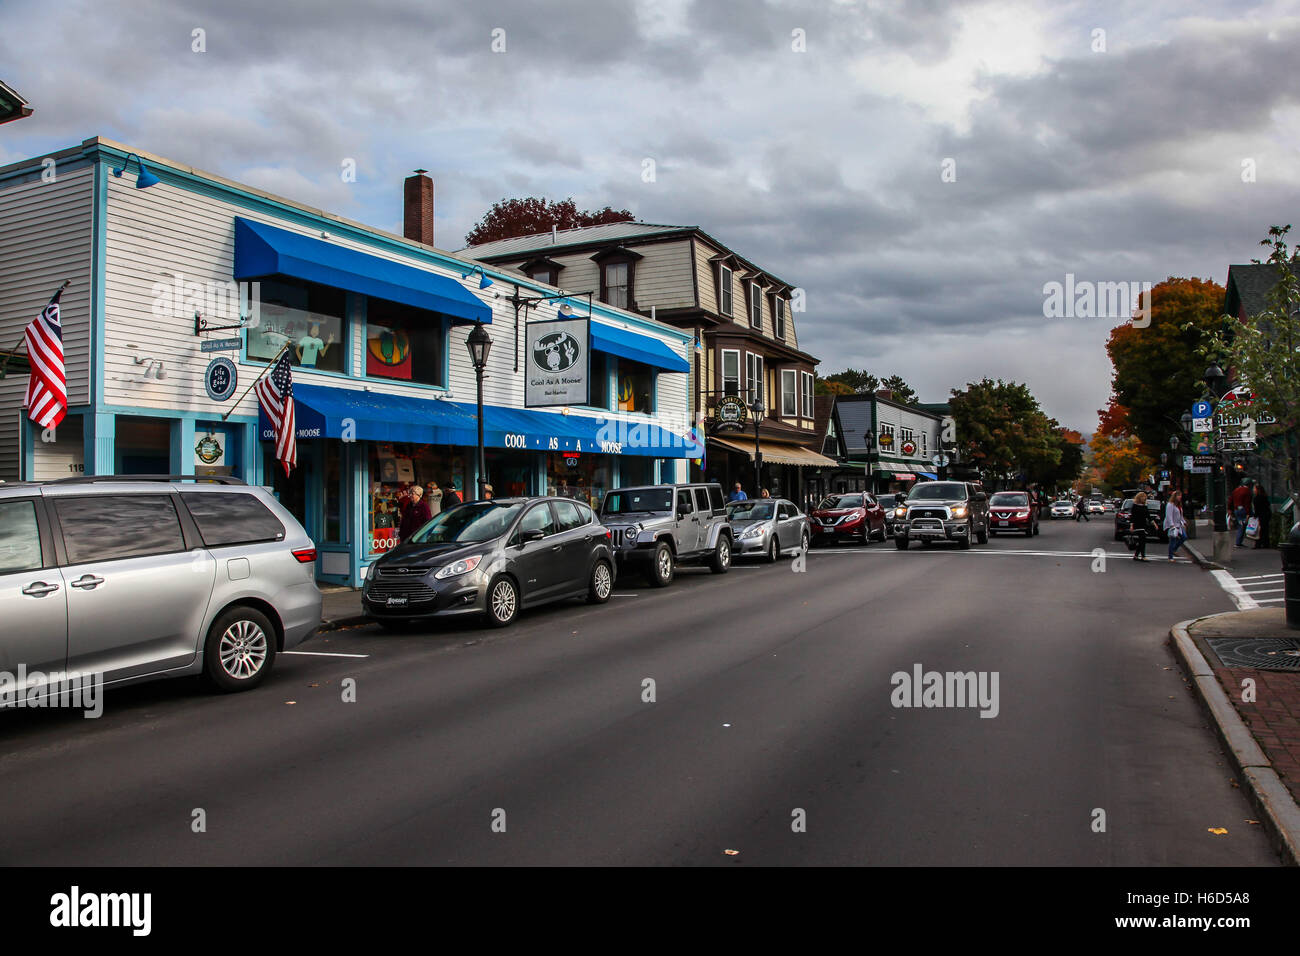 Bar Harbor downtown during Autumn season, Main Street view in Bar Harbor on October - Stock Image